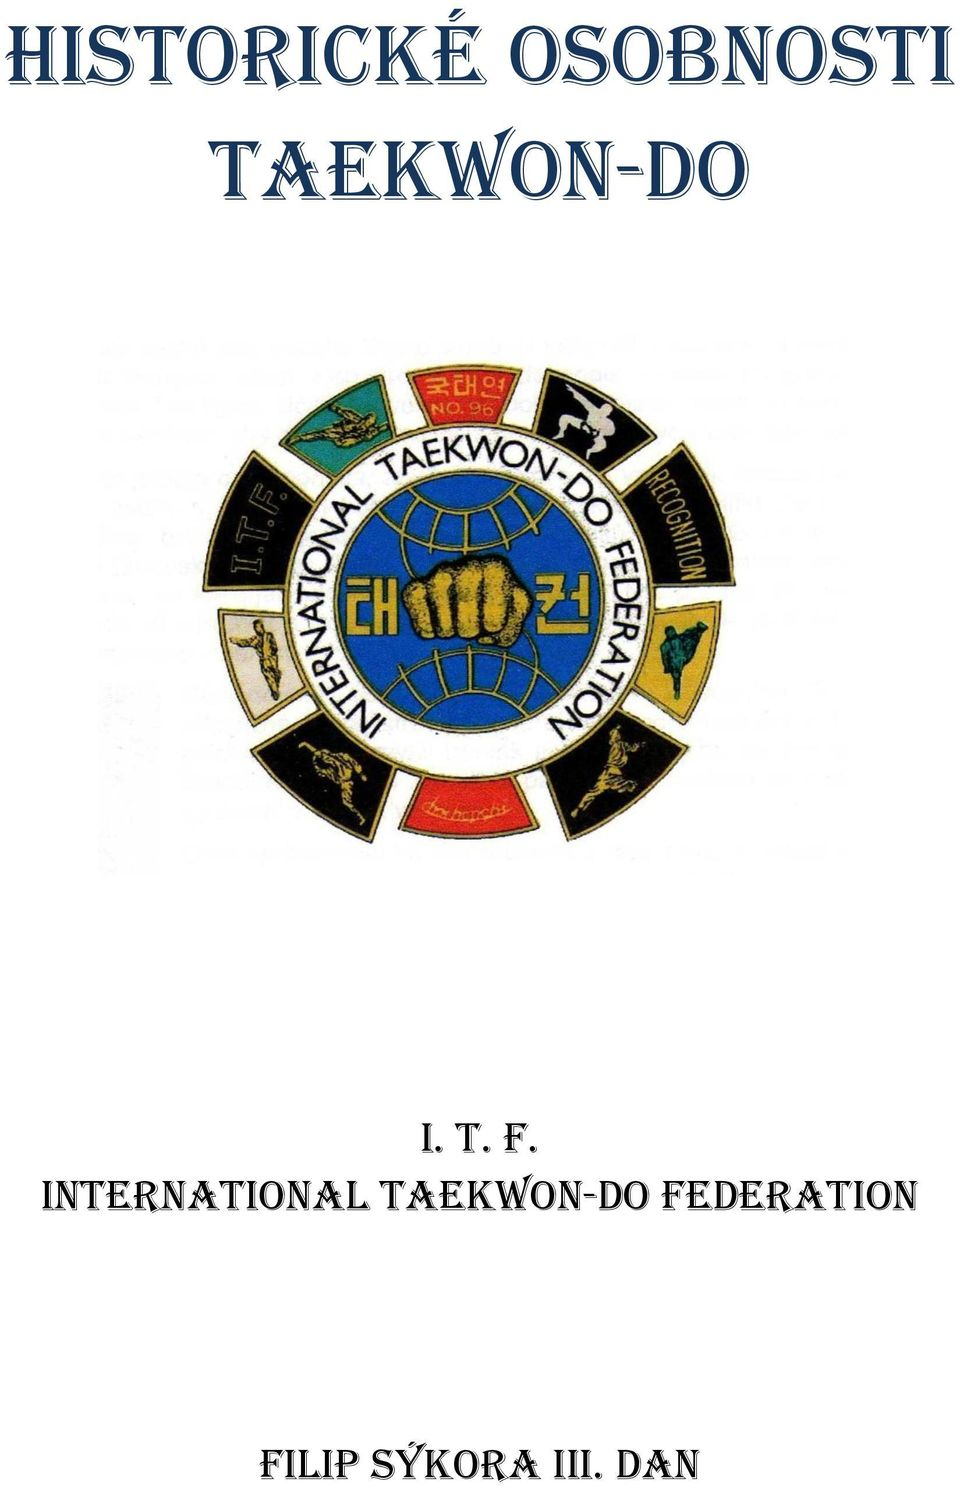 INTERNATIONAL TAEKWON-DO